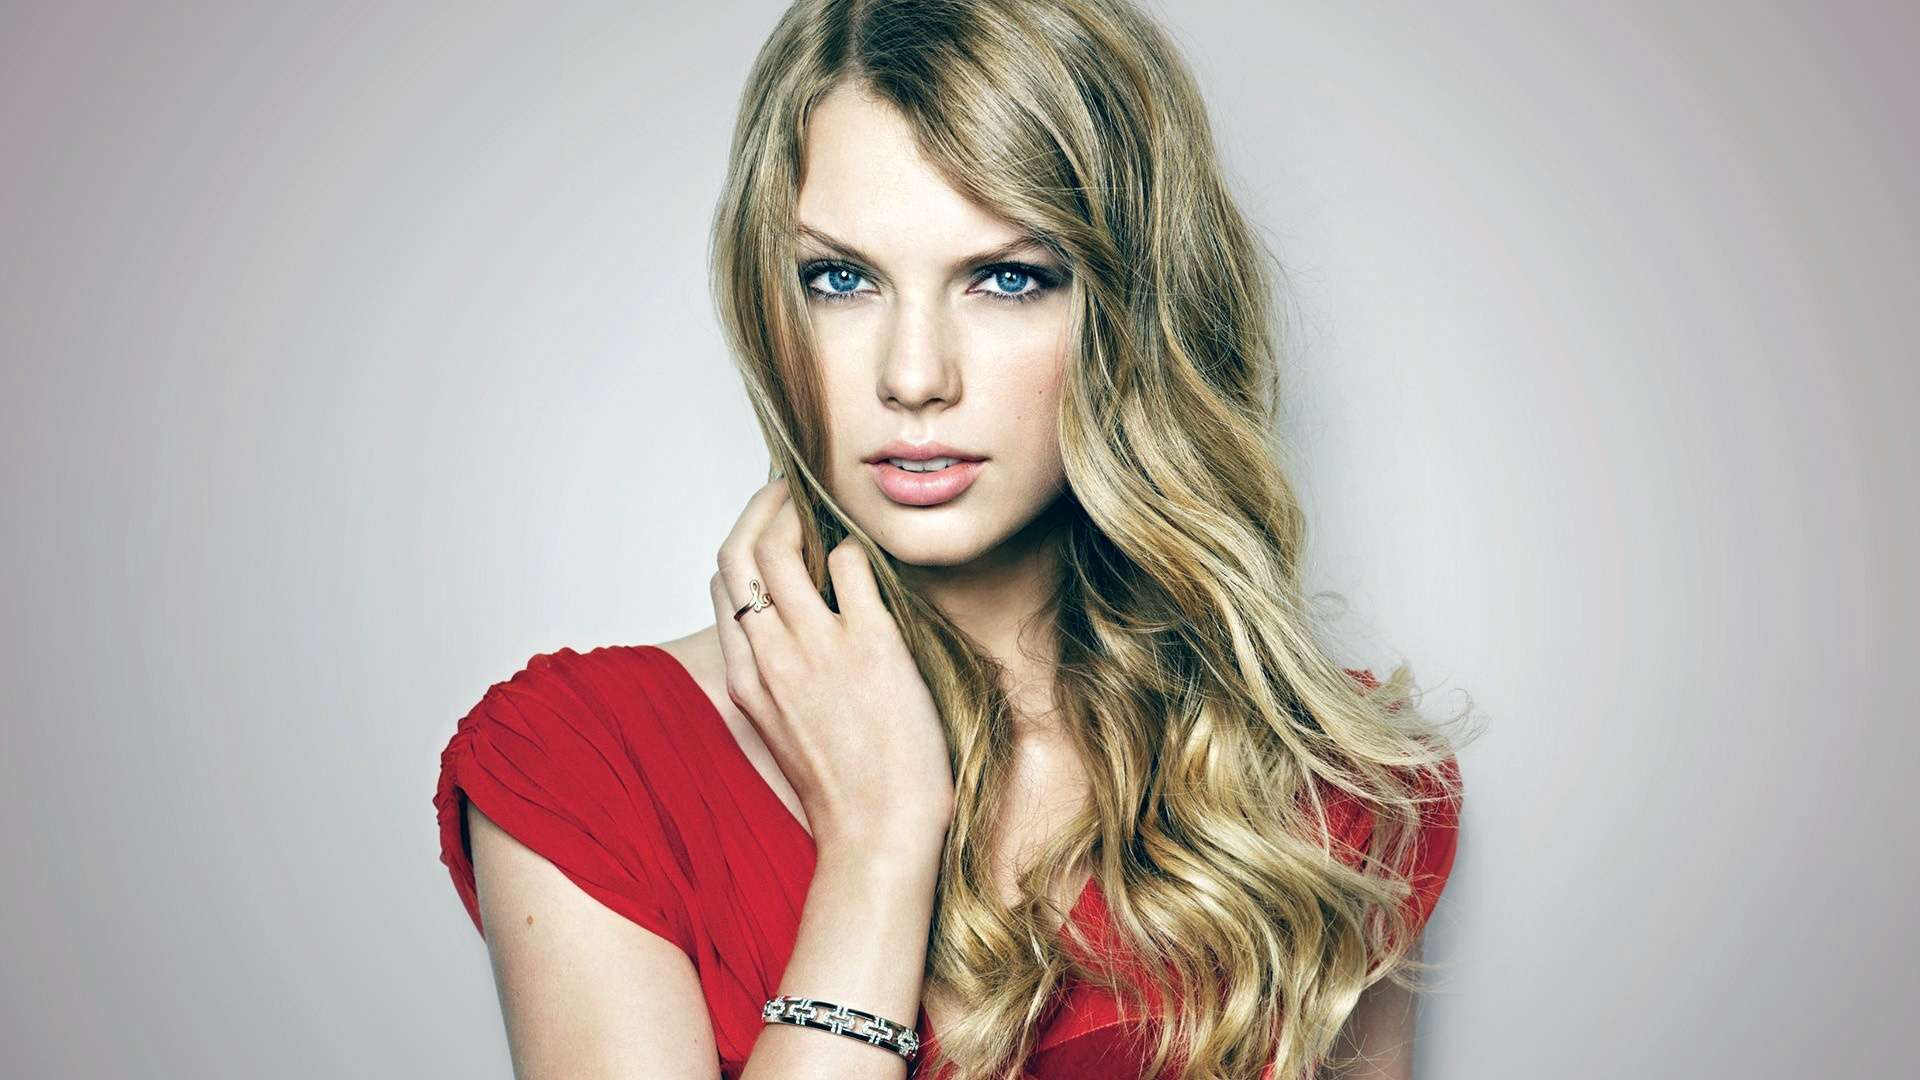 Taylor Swift Wallpapers 1080p